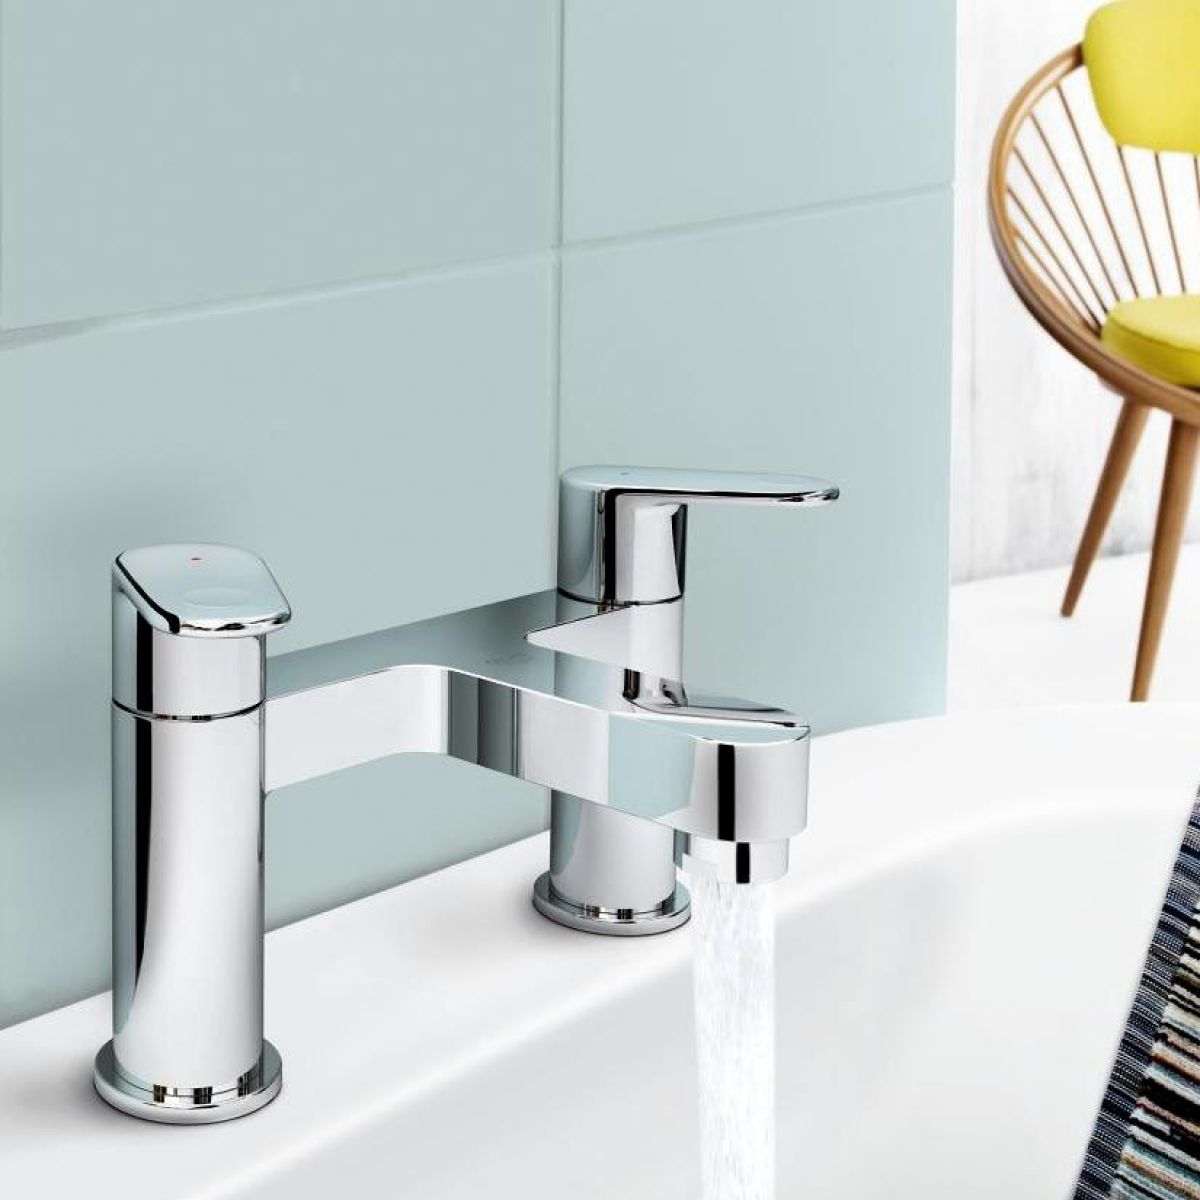 Grohe Kitchen Faucets Amazon Fine Taps Grohe Gallery Bathtub Ideas